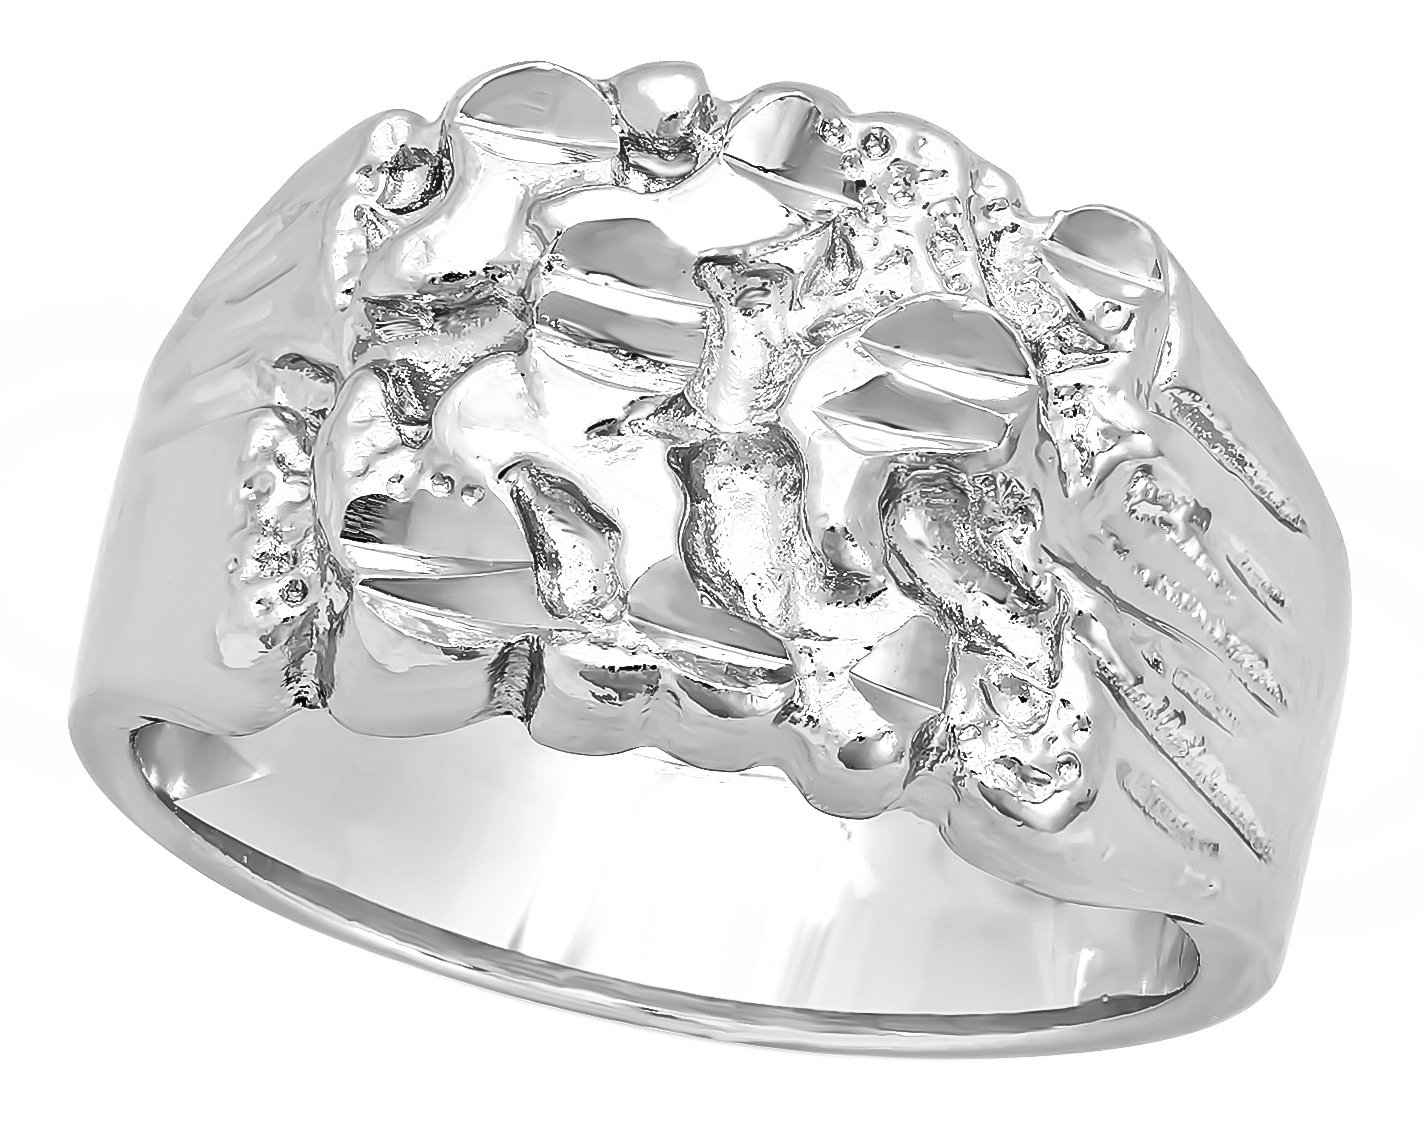 Boy's 19mm Large Rhodium Plated Chunky Nugget Pinky Ring Size 7-16 + Jewelry Cleaning Cloth